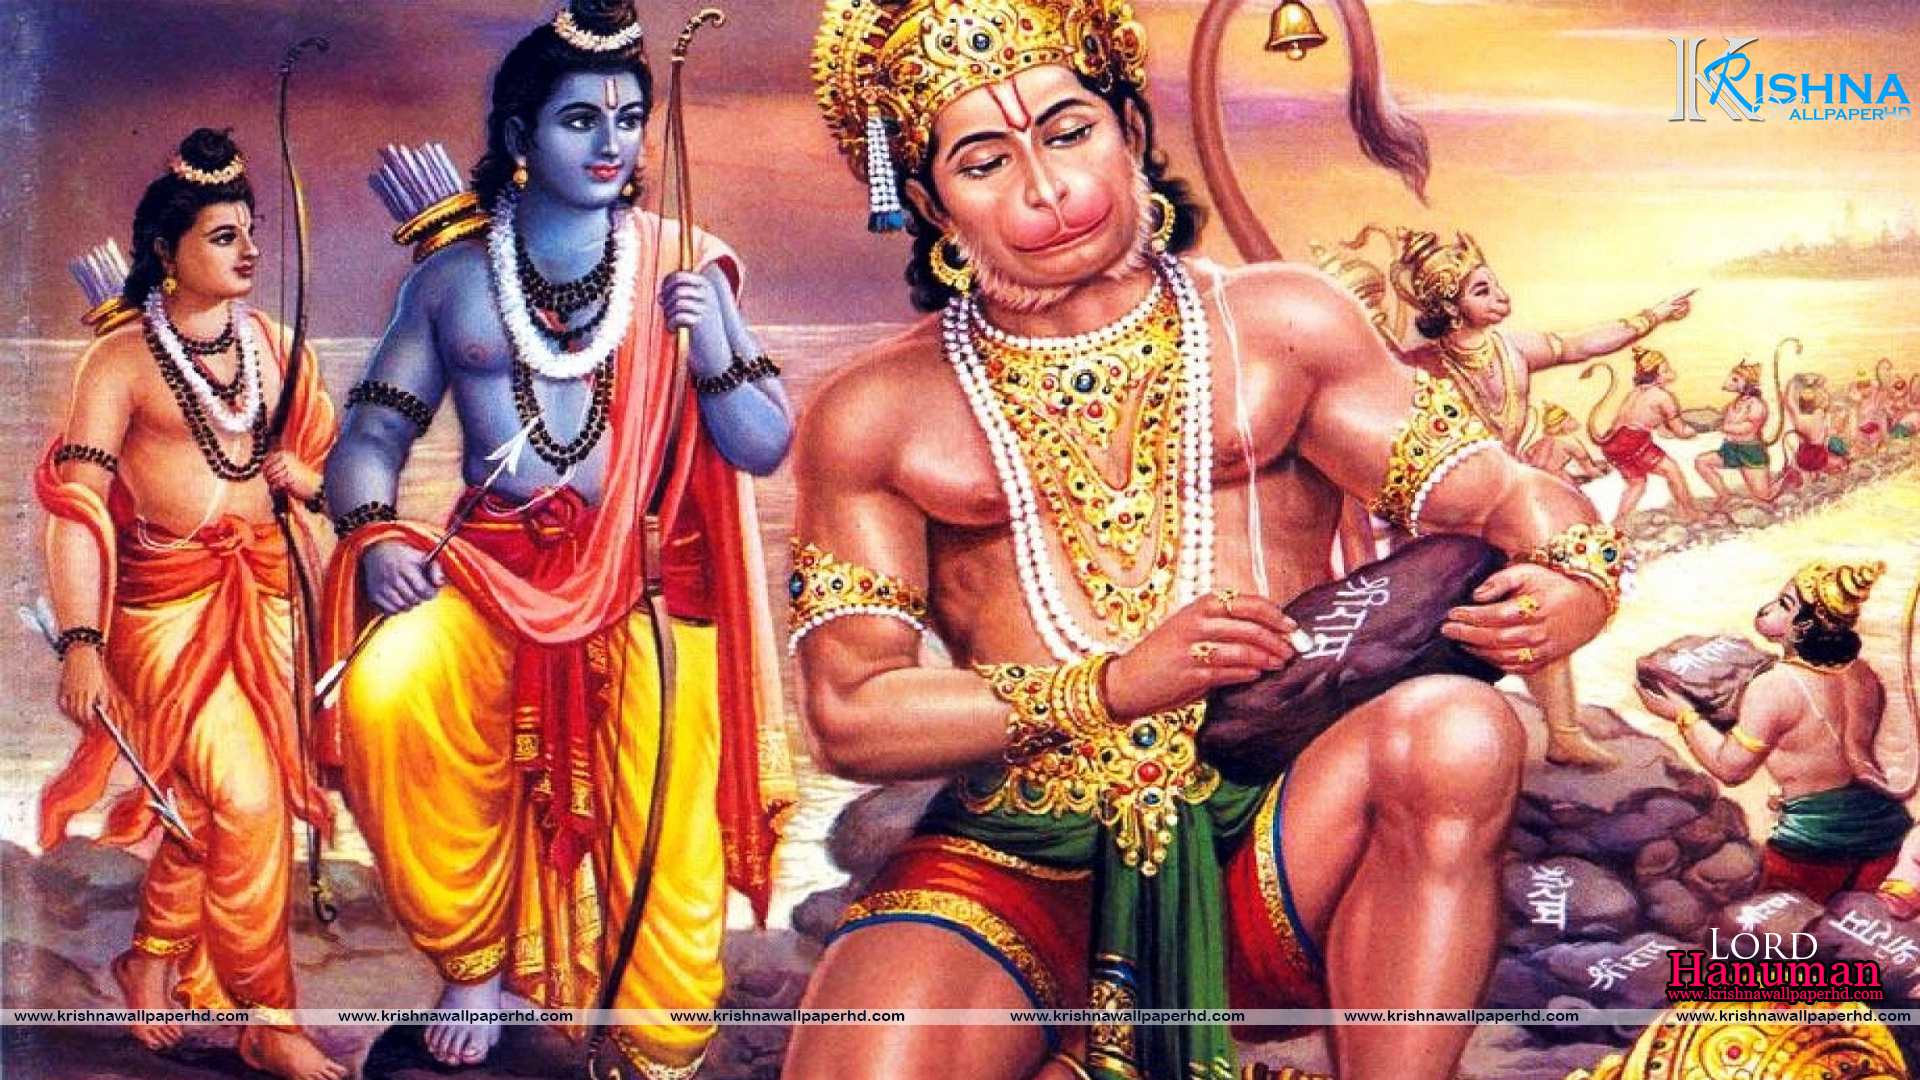 Full HD Size Photo of Lord Hanuman Free Download